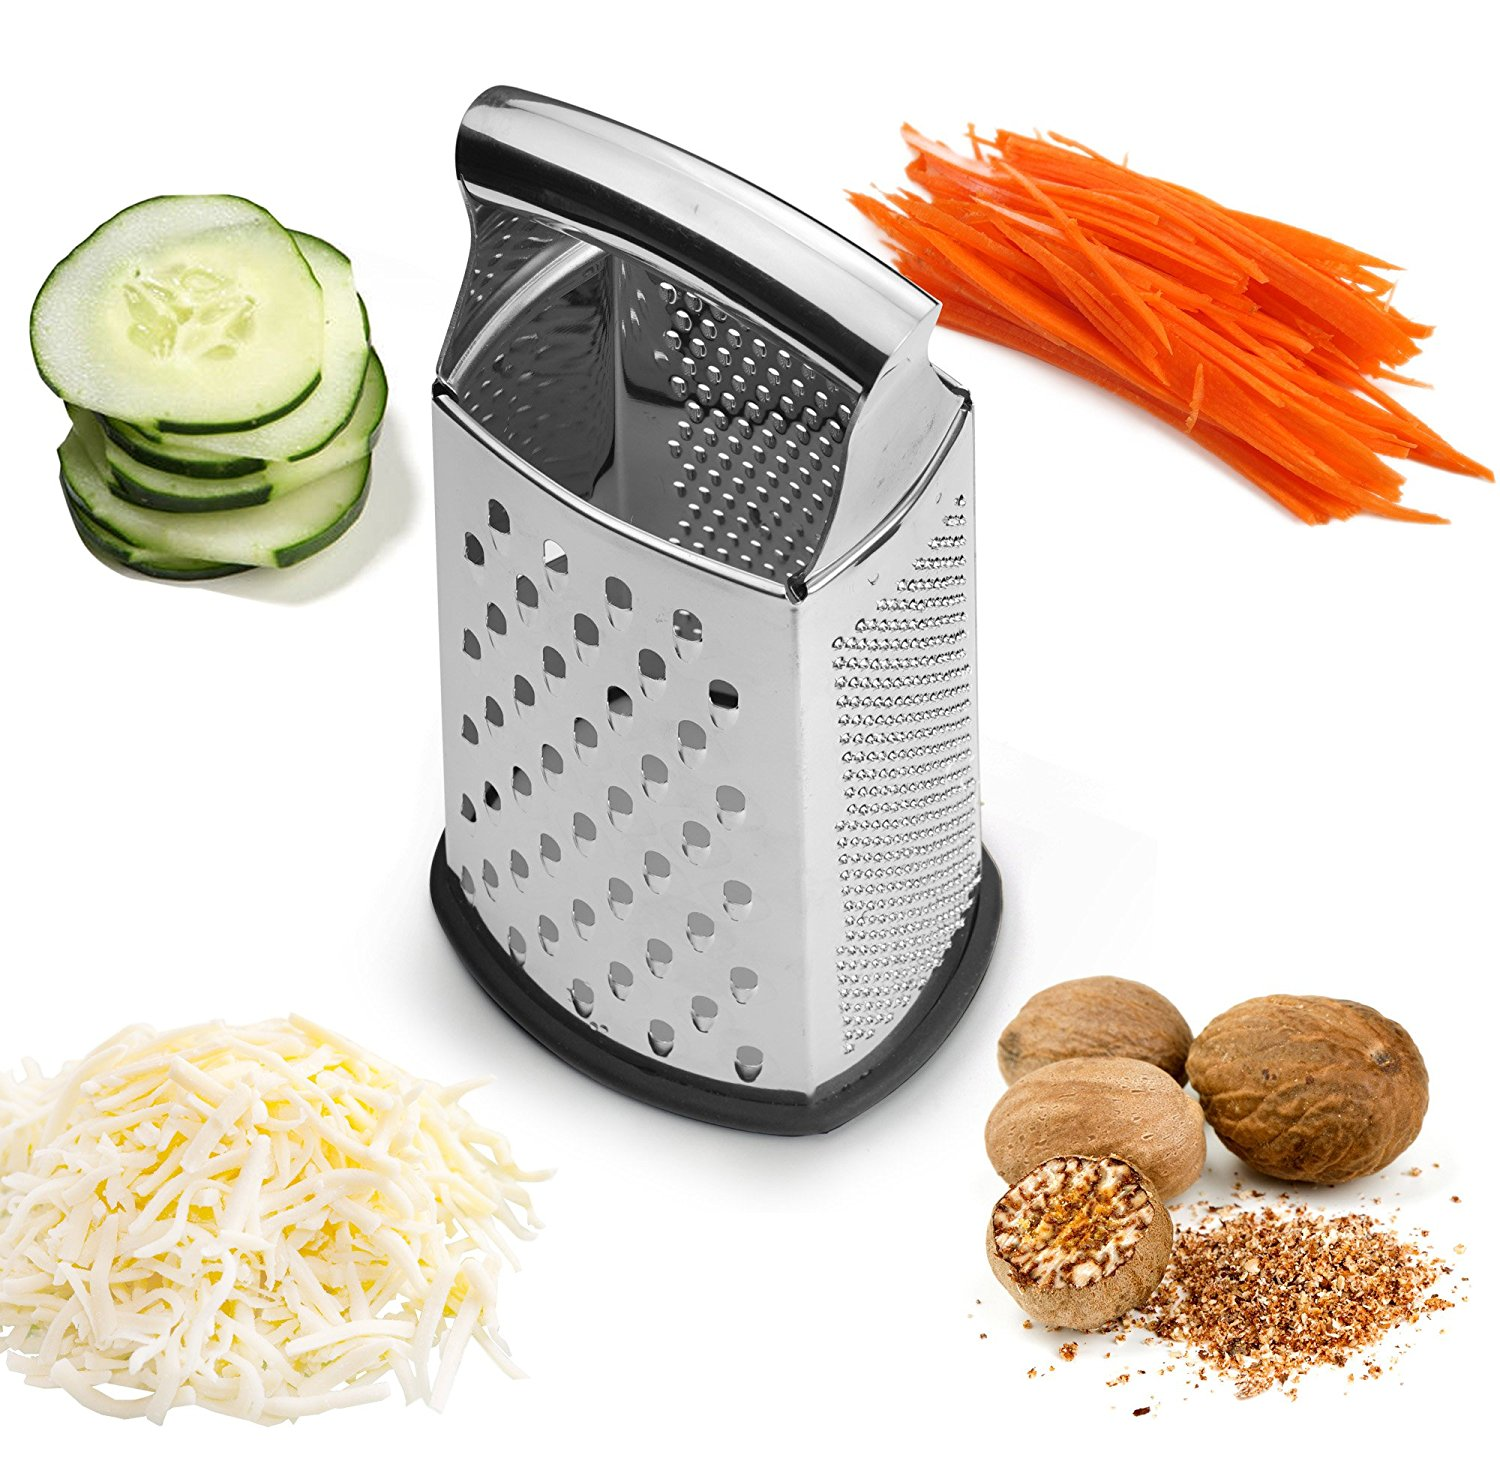 Spring Chef Professional Extra Large Box Grater and Shredder - Stainless Steel Manual Cheese Grater with 4 Sides, Good for Grating Cheese, Vegetables and More, 2 Sizes Available